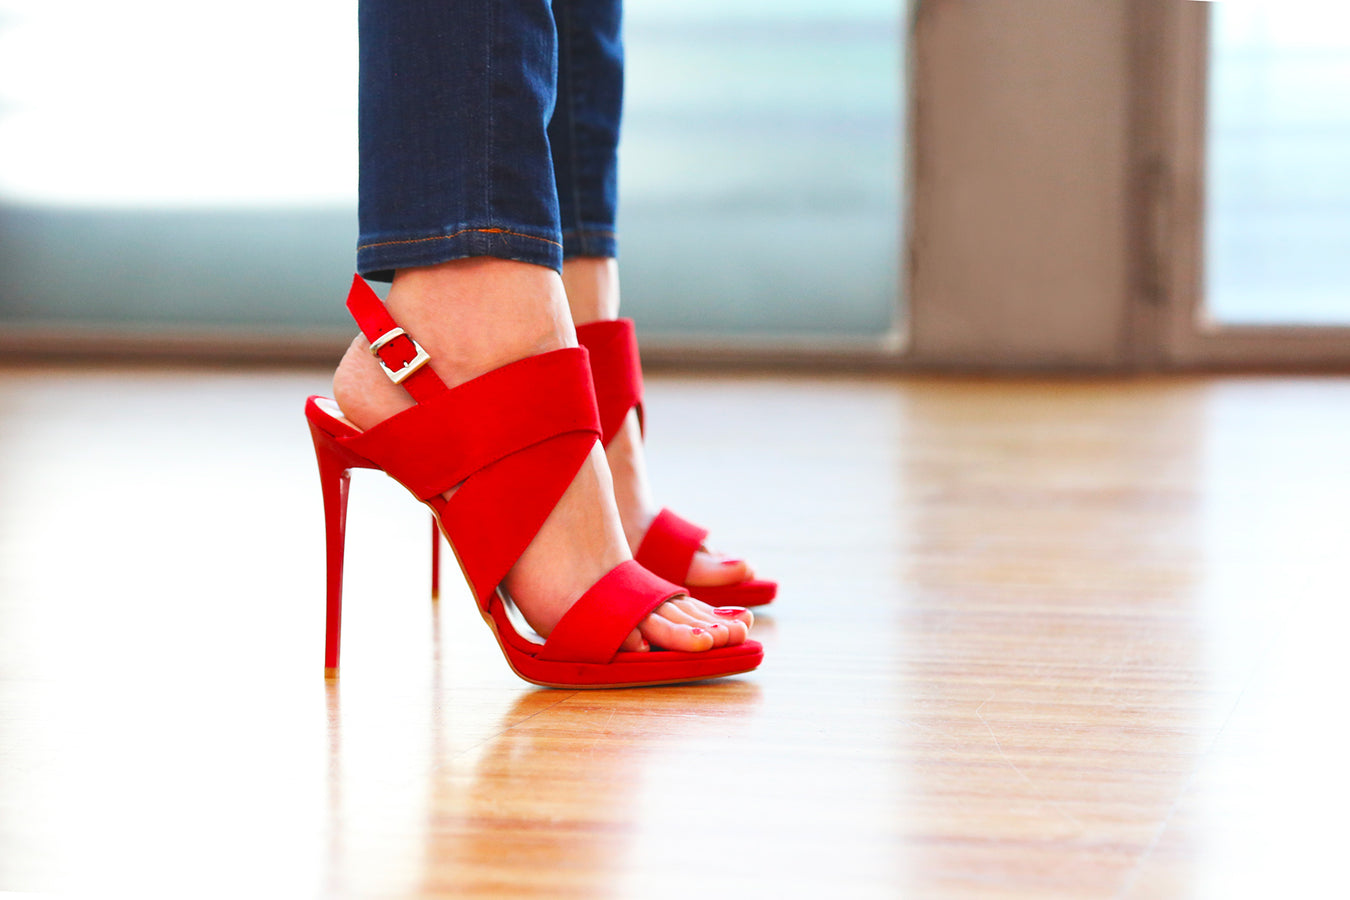 Designer High Stiletto Heels Sandals in Red